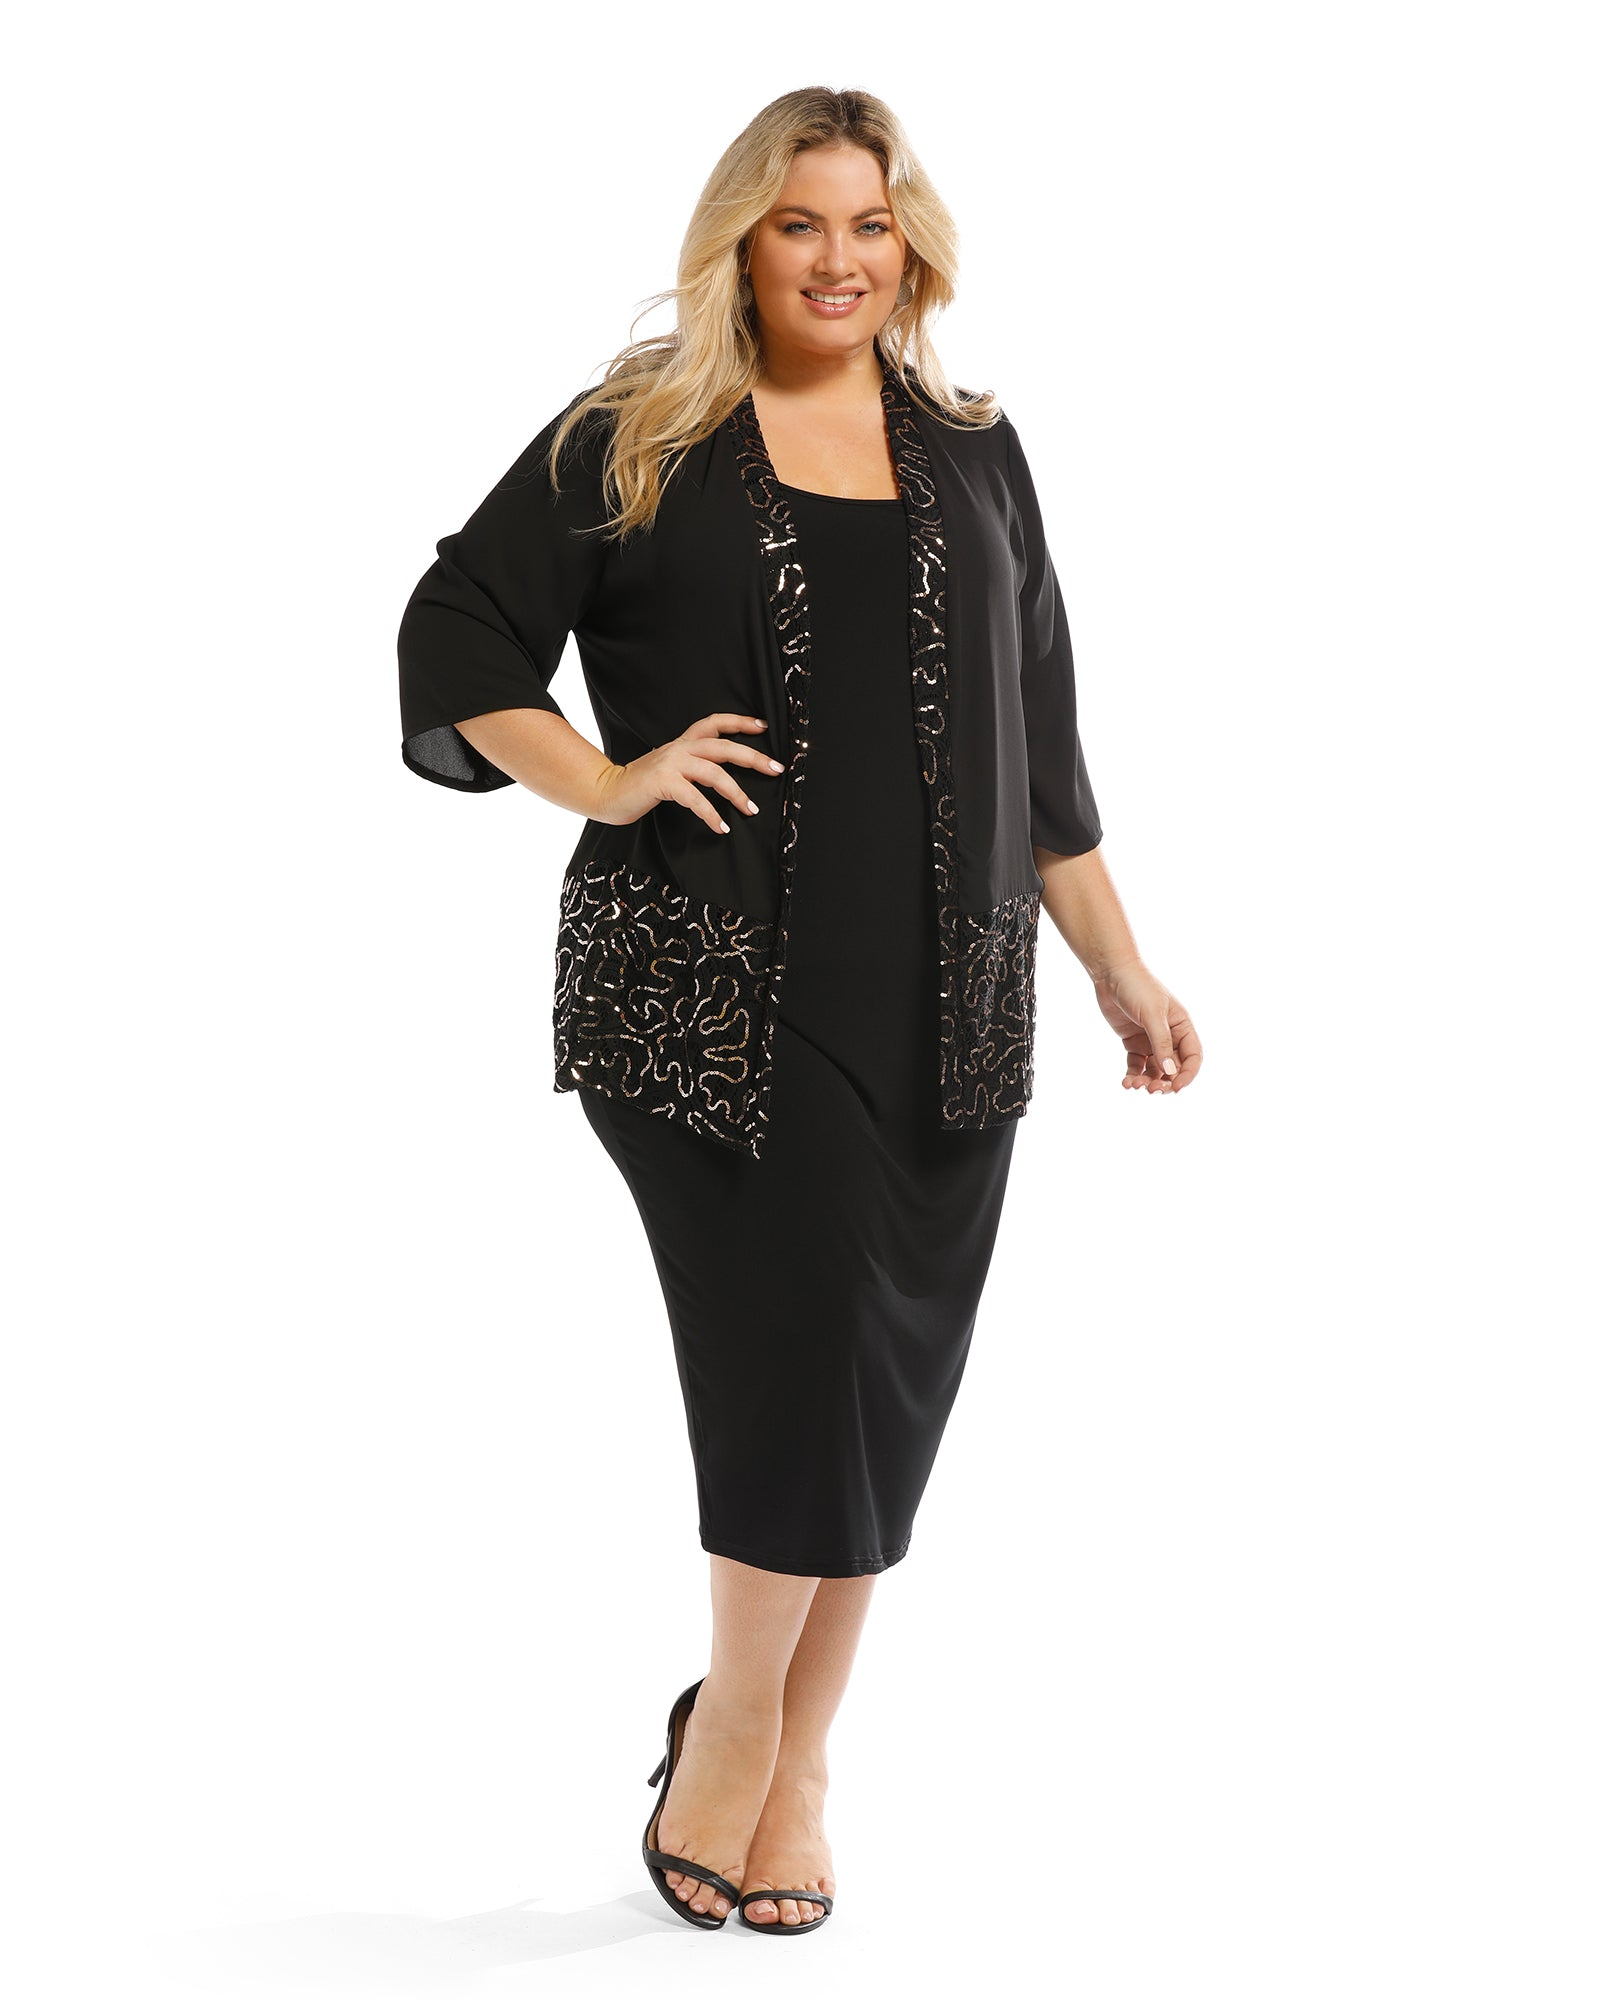 Gold Shimmer Trim Jacket - Black Size 12-26